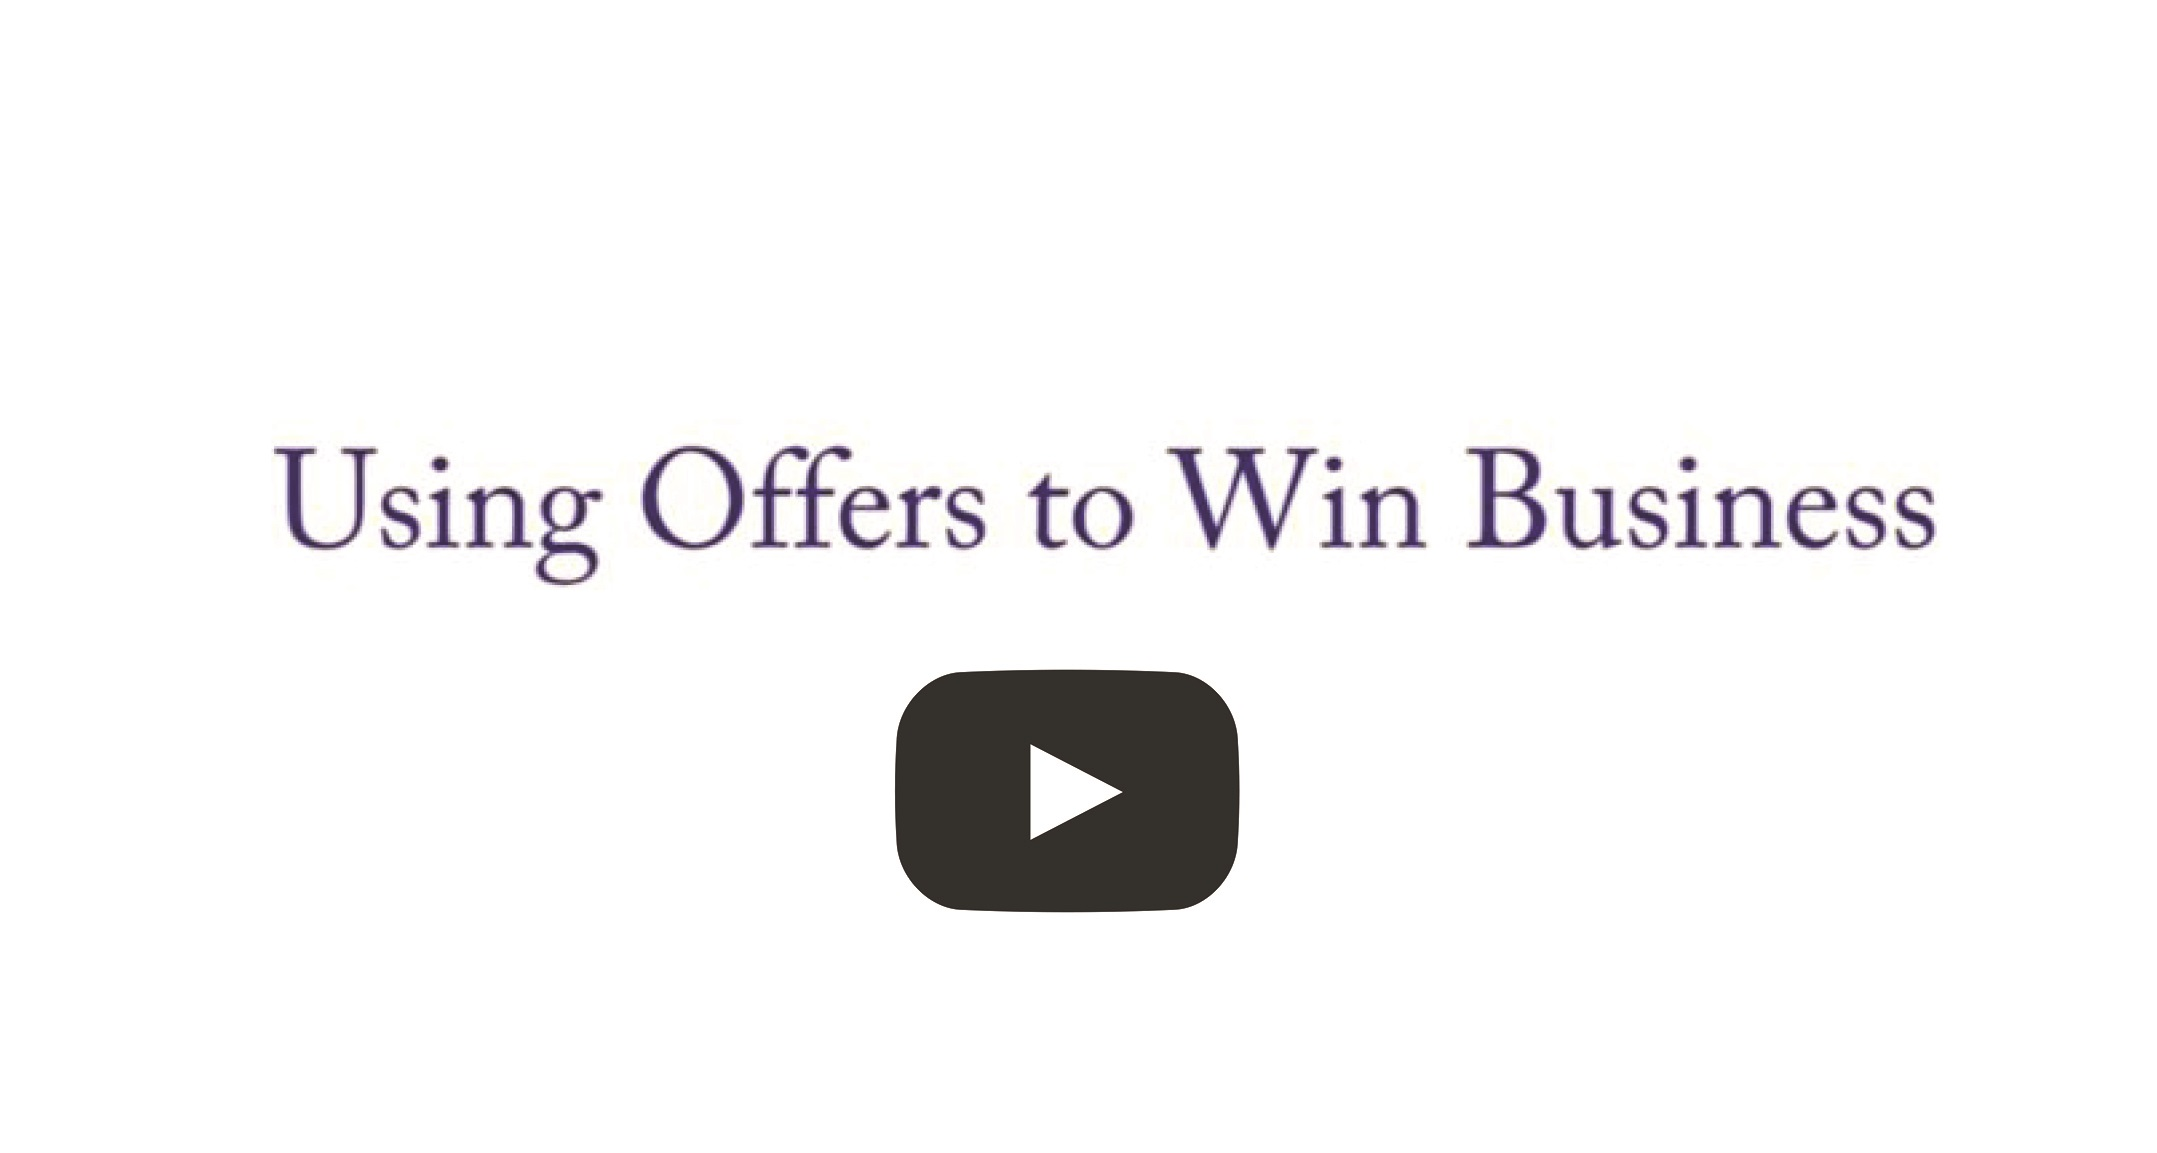 Using Offers to Win Business